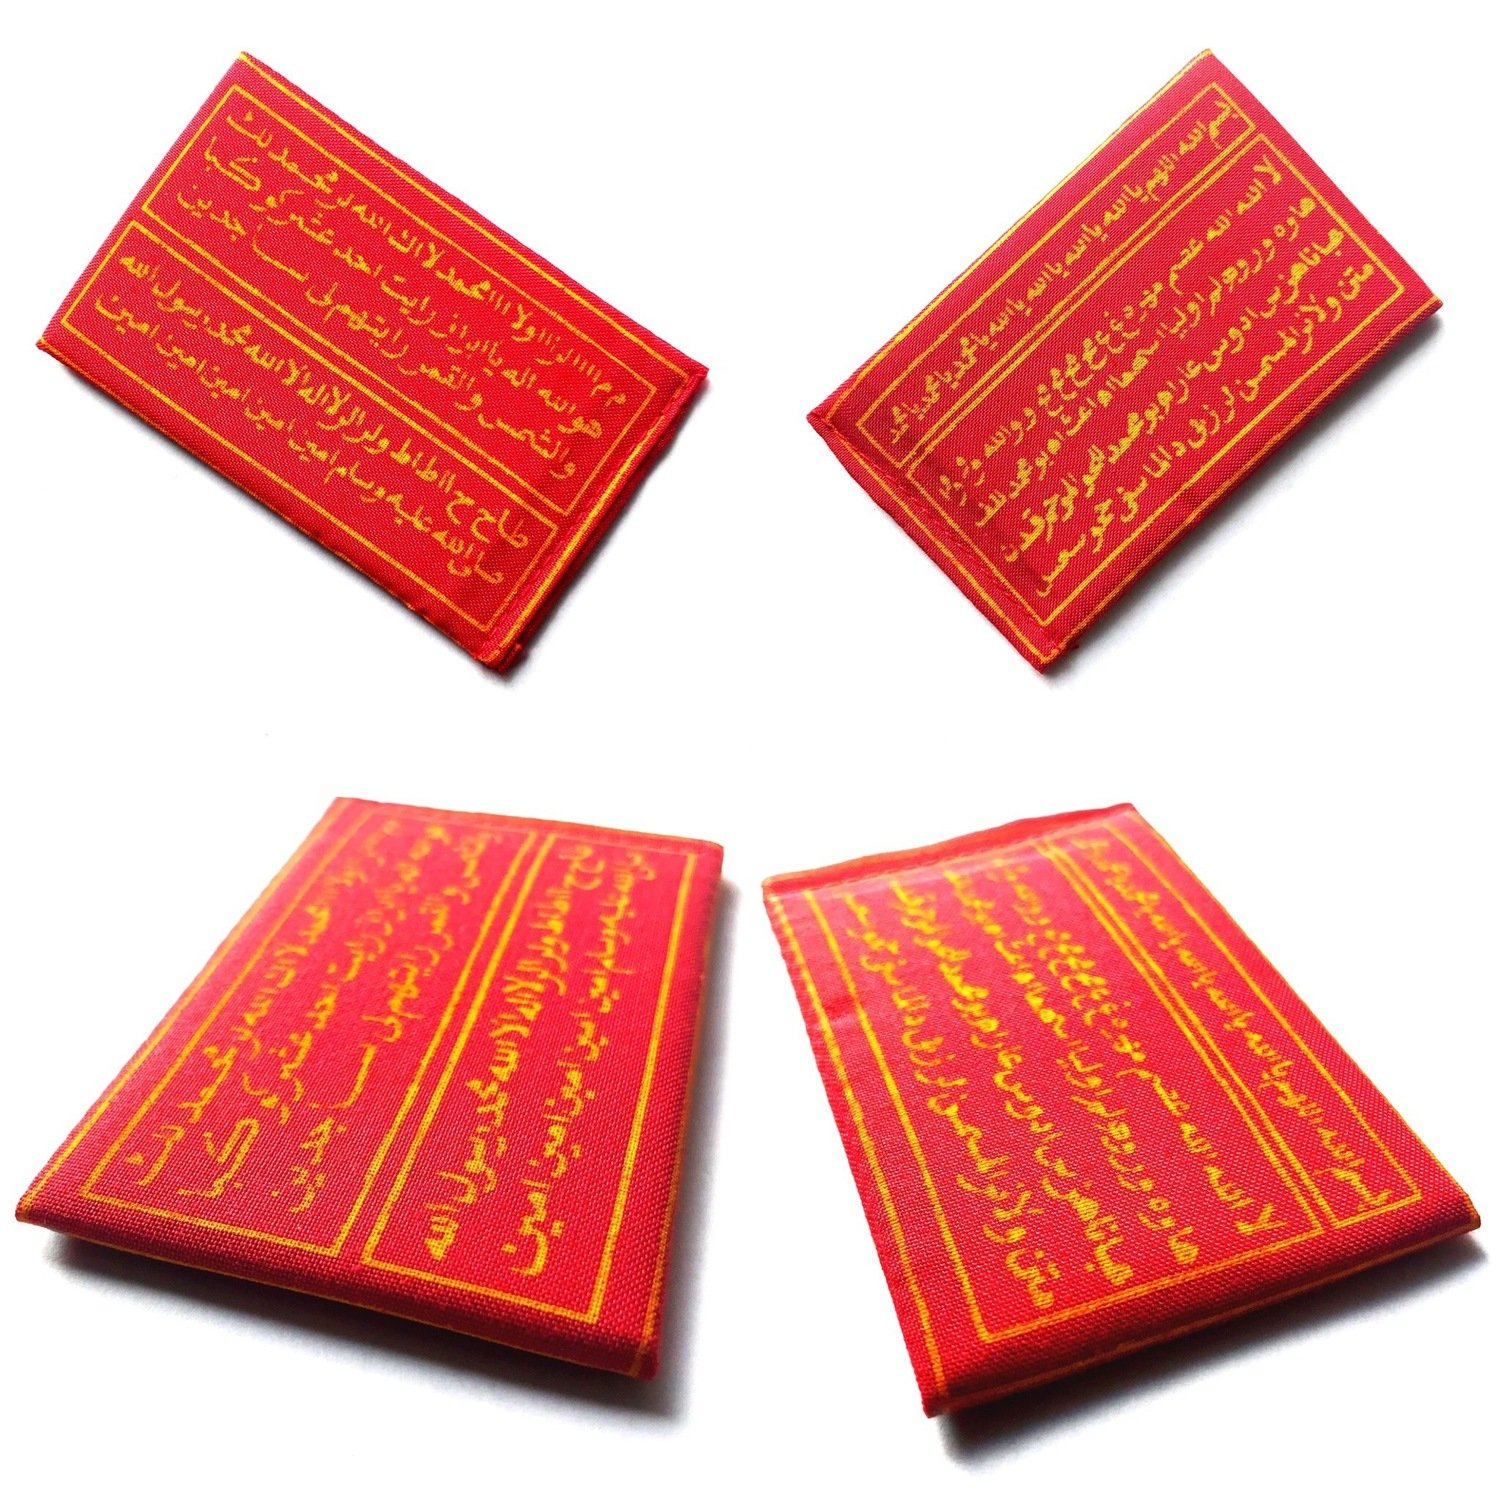 Authentic Indonesian Taweez in Red and Yellow Color to Conquer All Evil and to Avoid Unfortunate Mishaps